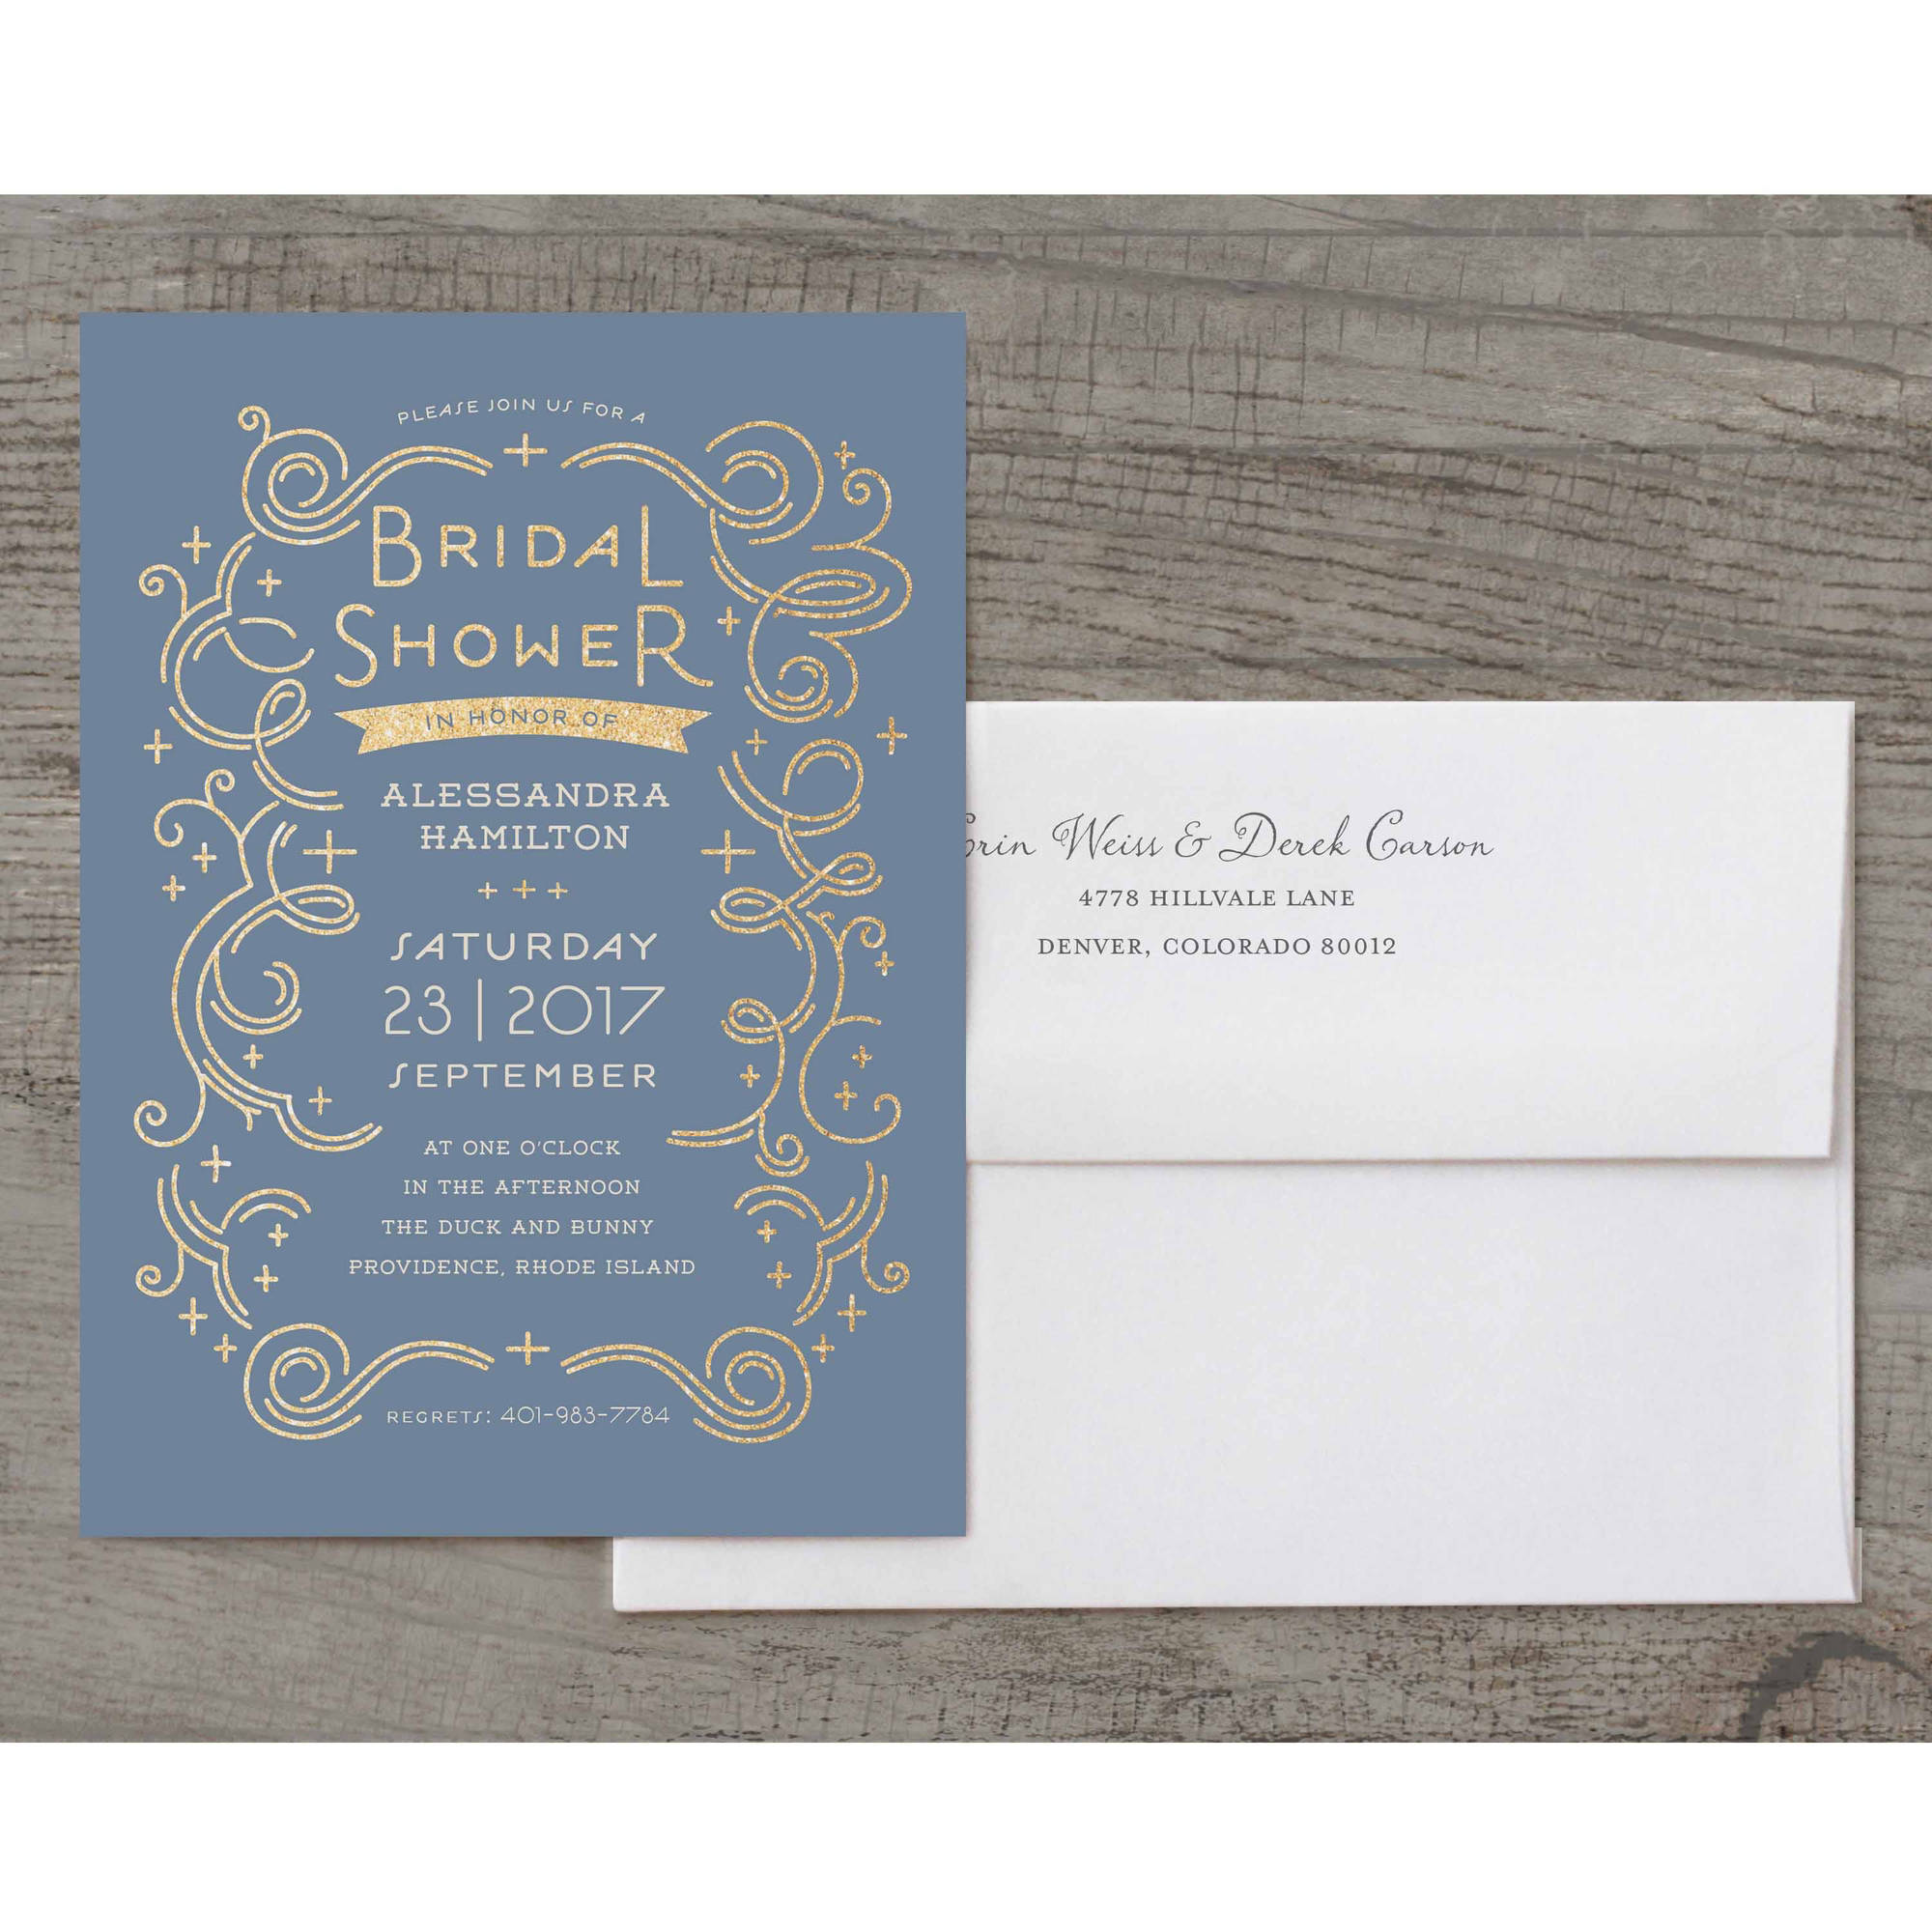 Glamorous Bride Deluxe Bridal Shower Invitation